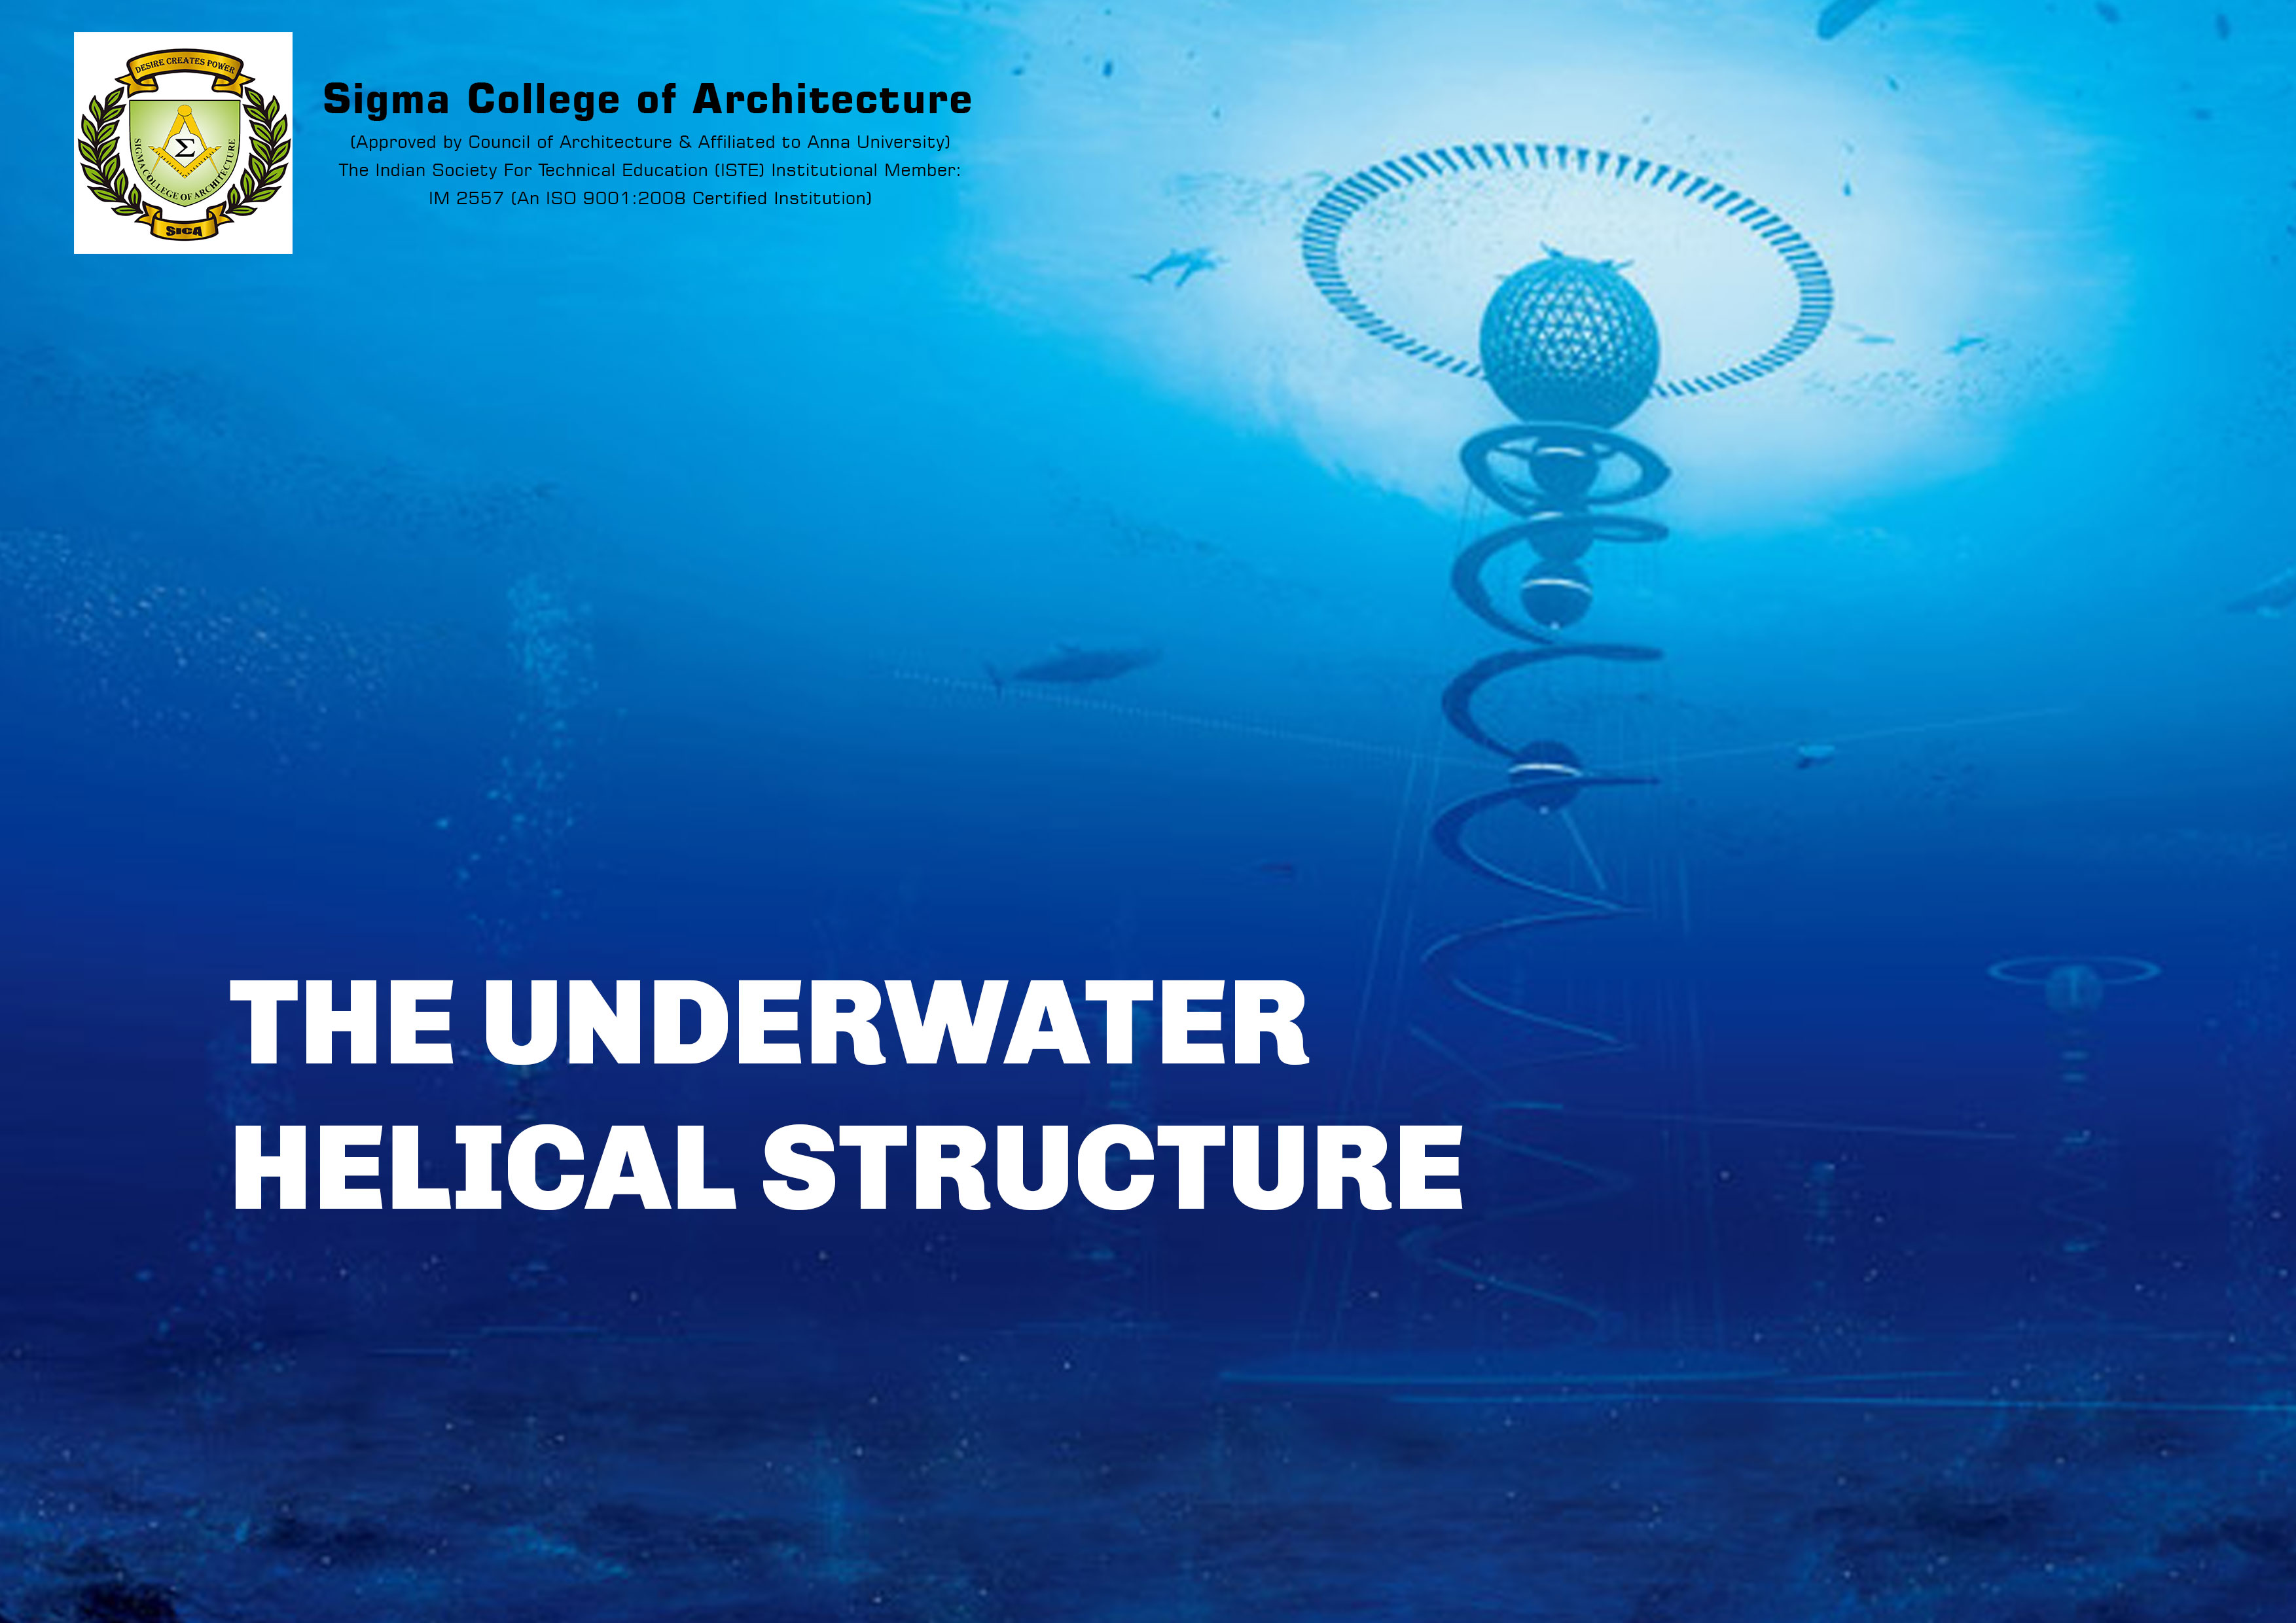 The Underwater Helical Structure